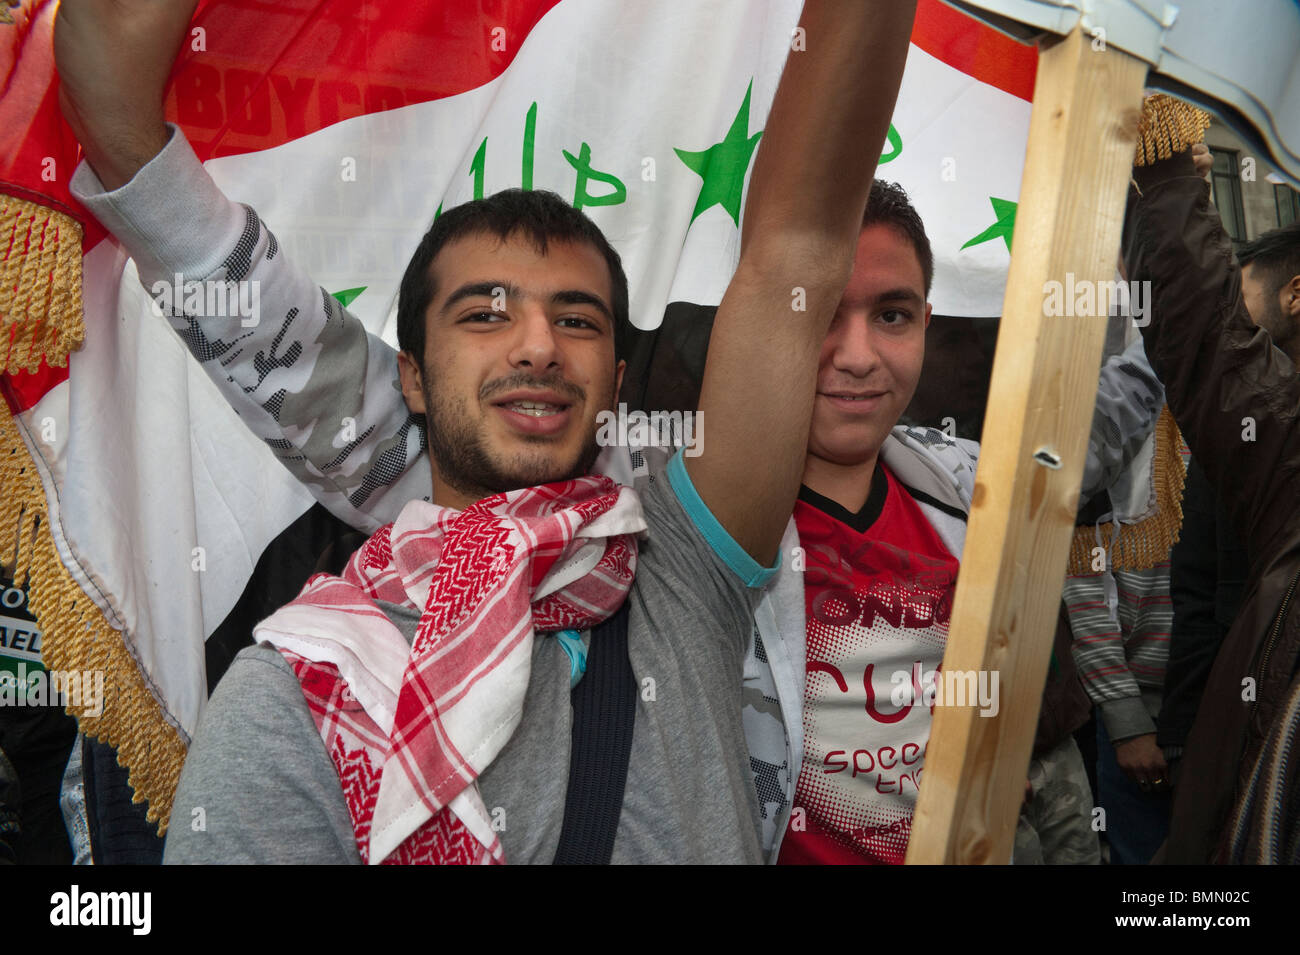 Young Muslim men and flag in Al Quds Day (Jerusalem Day) march in London - Stock Image